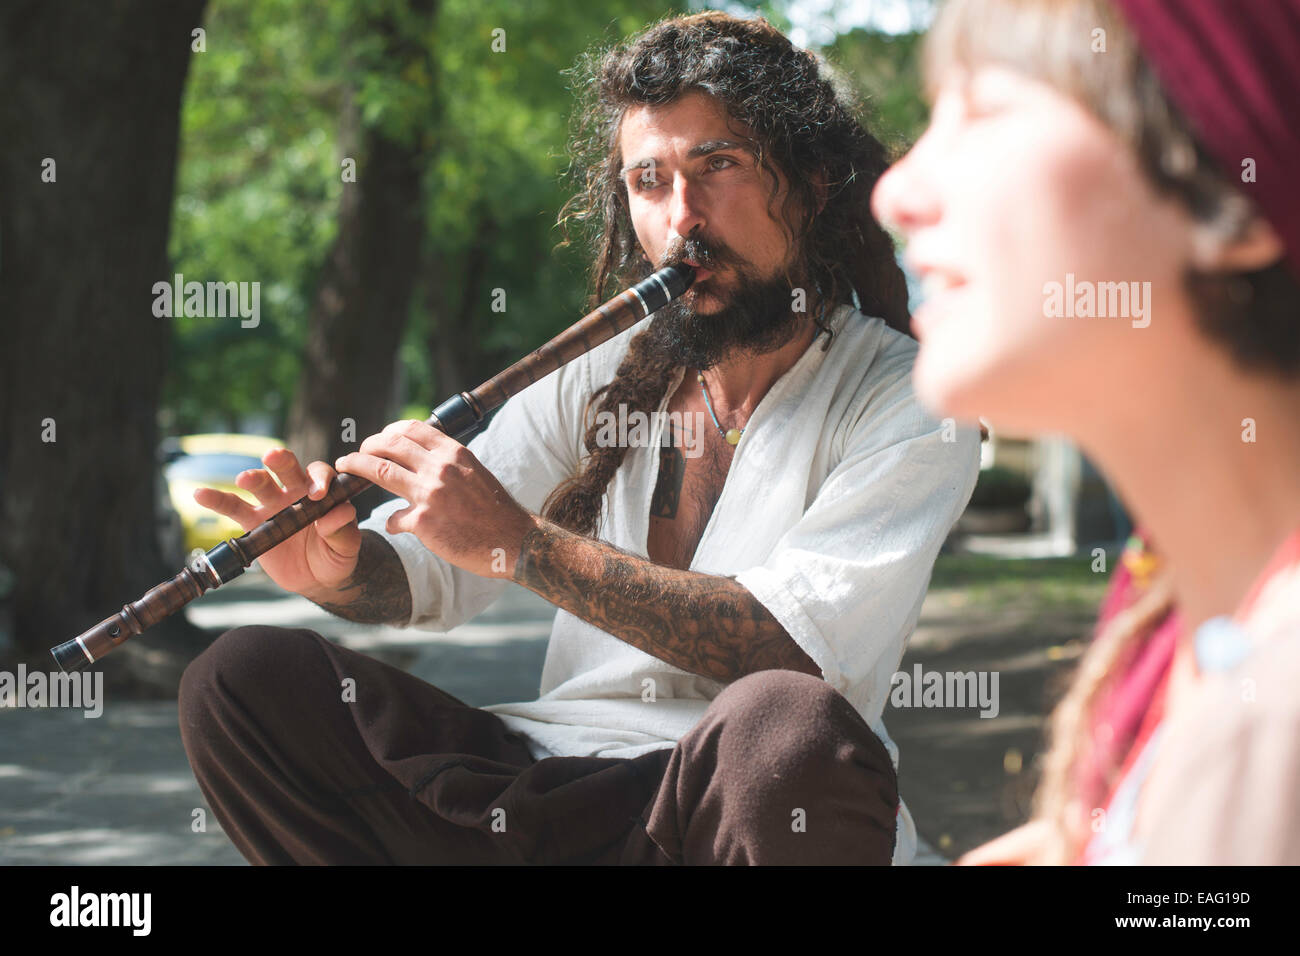 Street musicians singing and playing. Sunny day - Stock Image